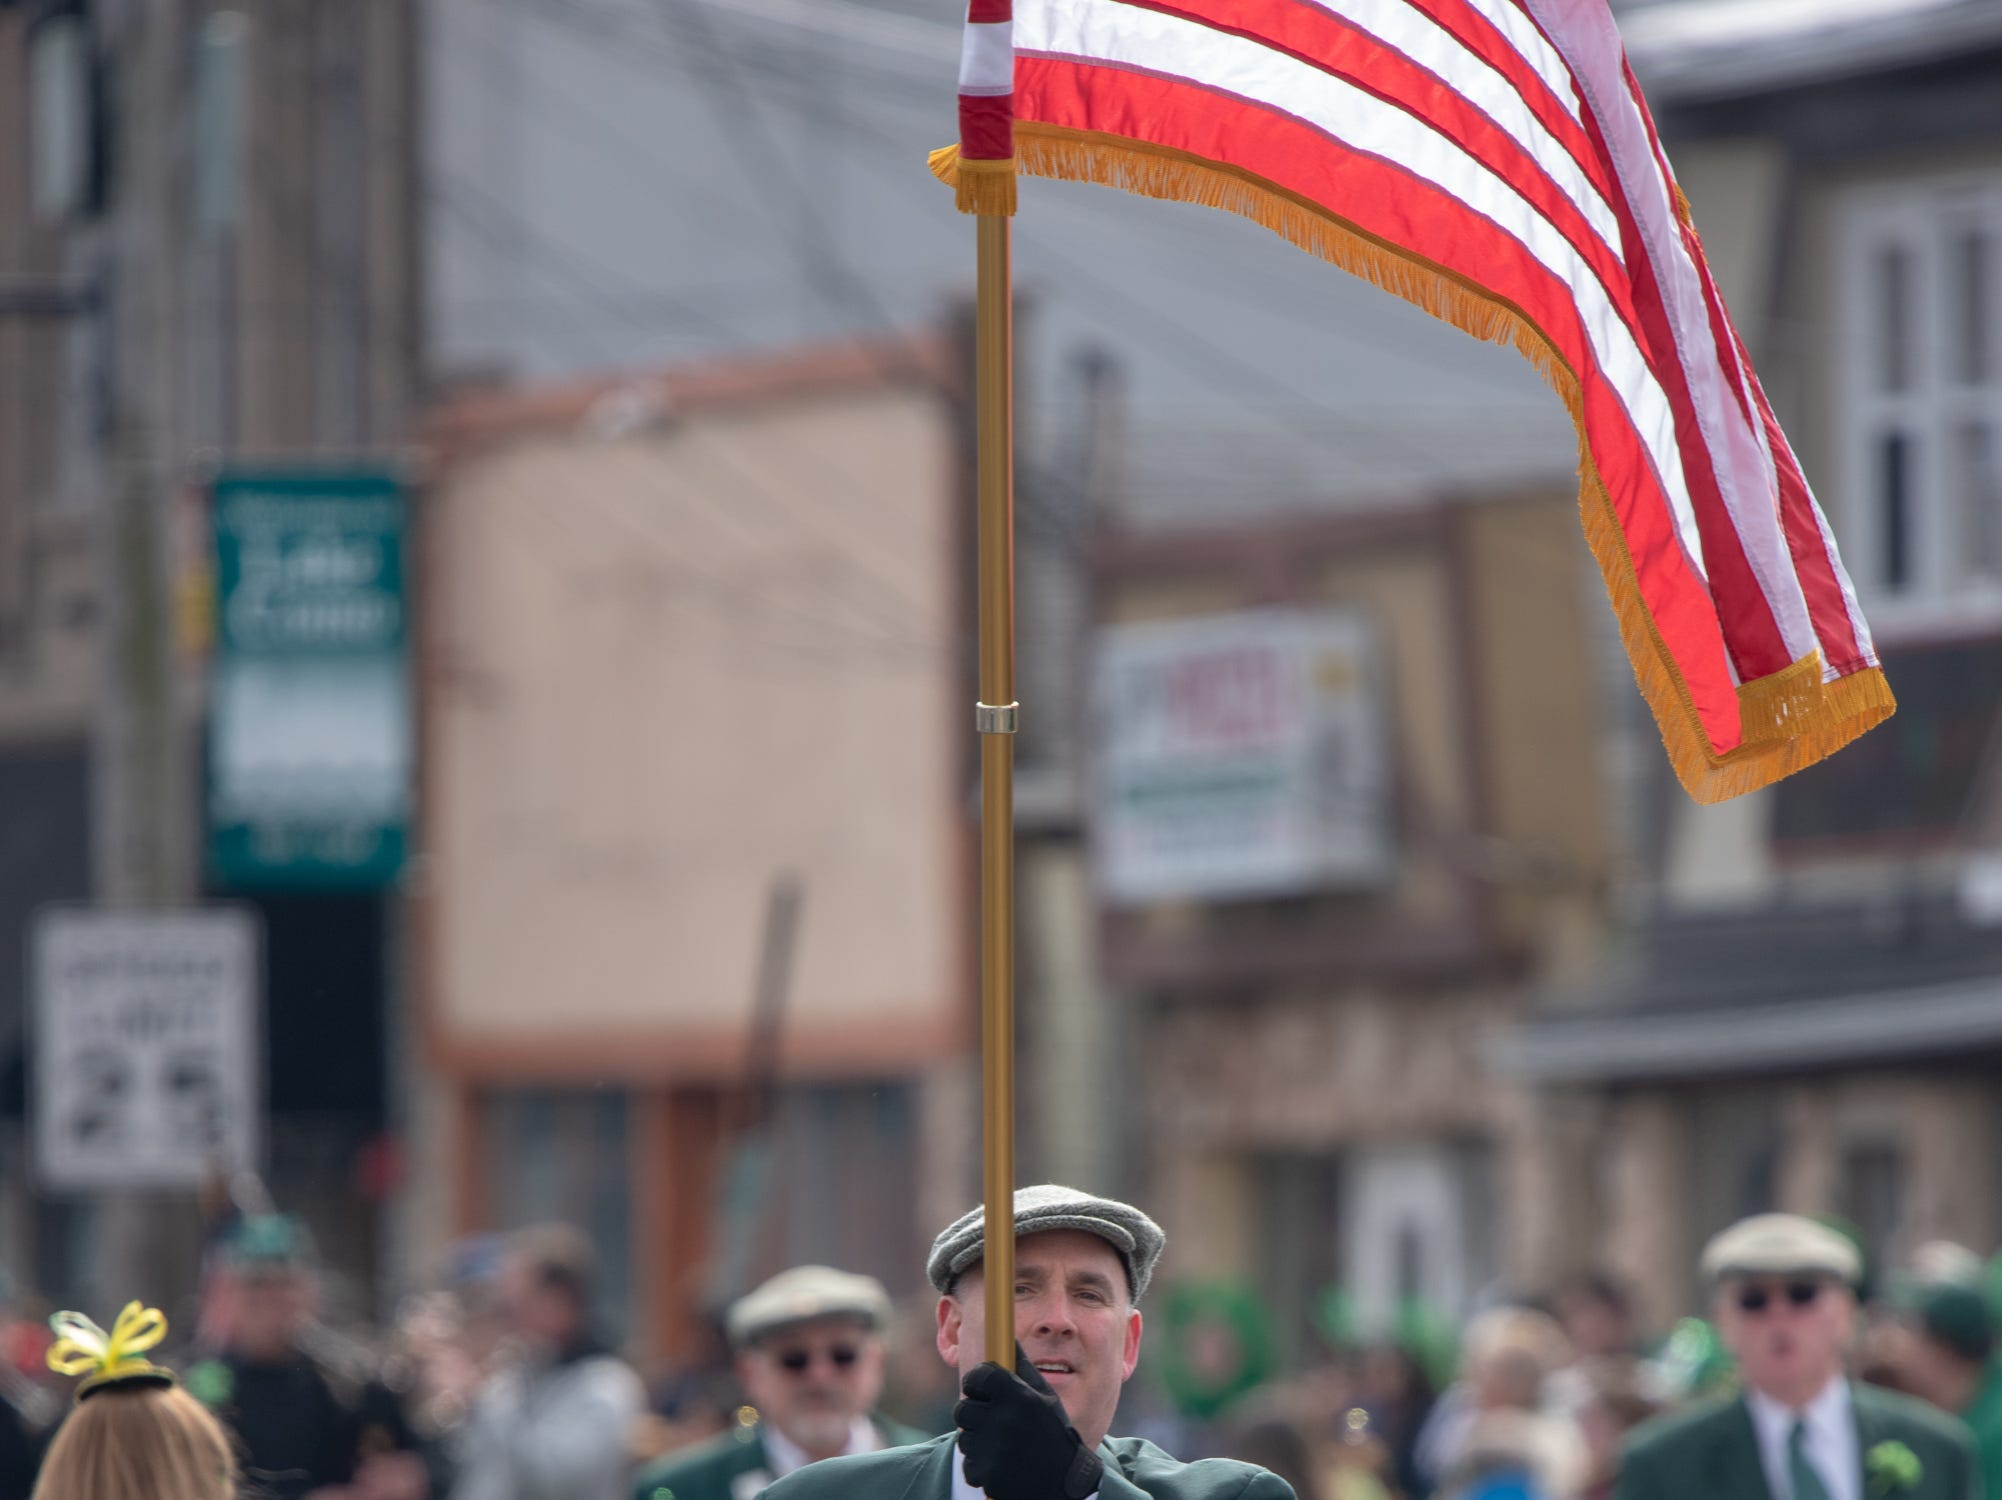 Glen Gibson of the Friendly Sons of the Shillelagh of the Jersey Shore carries the American flag. The 46th annual Belmar/Lake Como St. Patrick's Day Parade was held in Belmar on March 3, 2019.